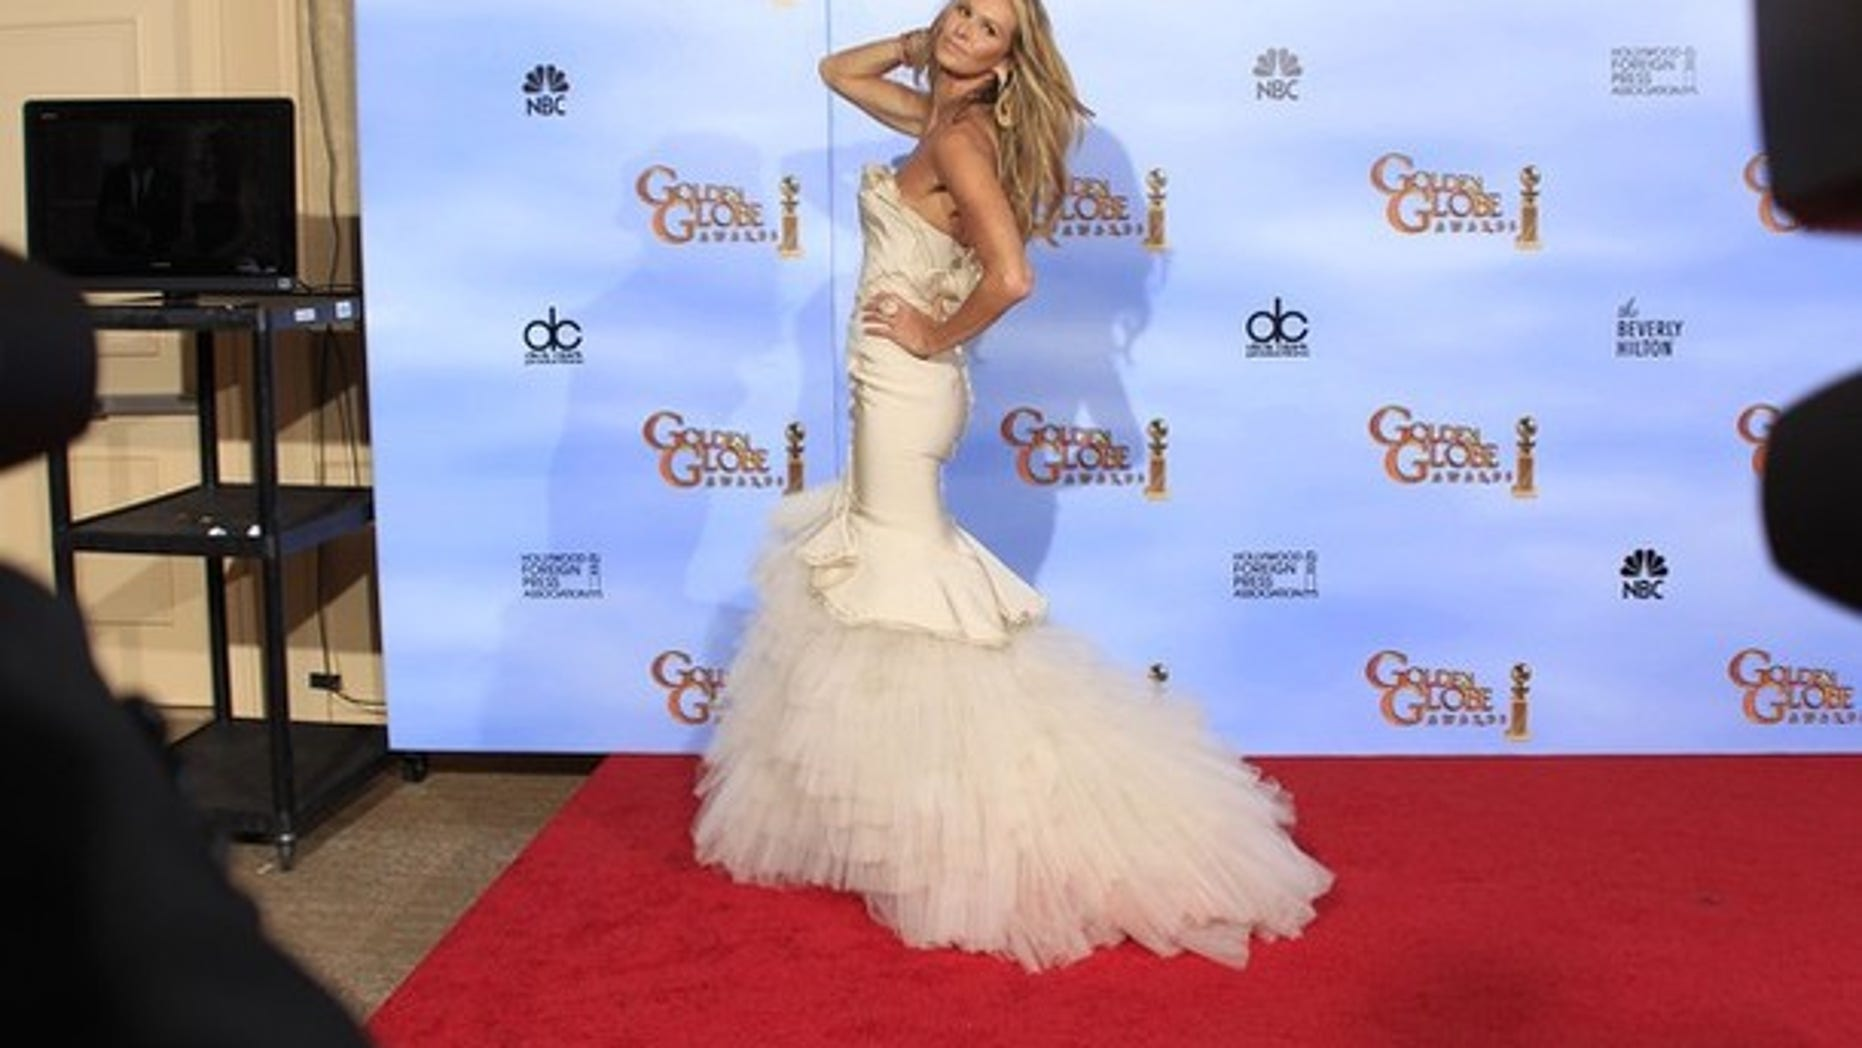 Model Elle Macpherson poses backstage at the 69th annual Golden Globe Awards in Beverly Hills, California, January 15, 2012.